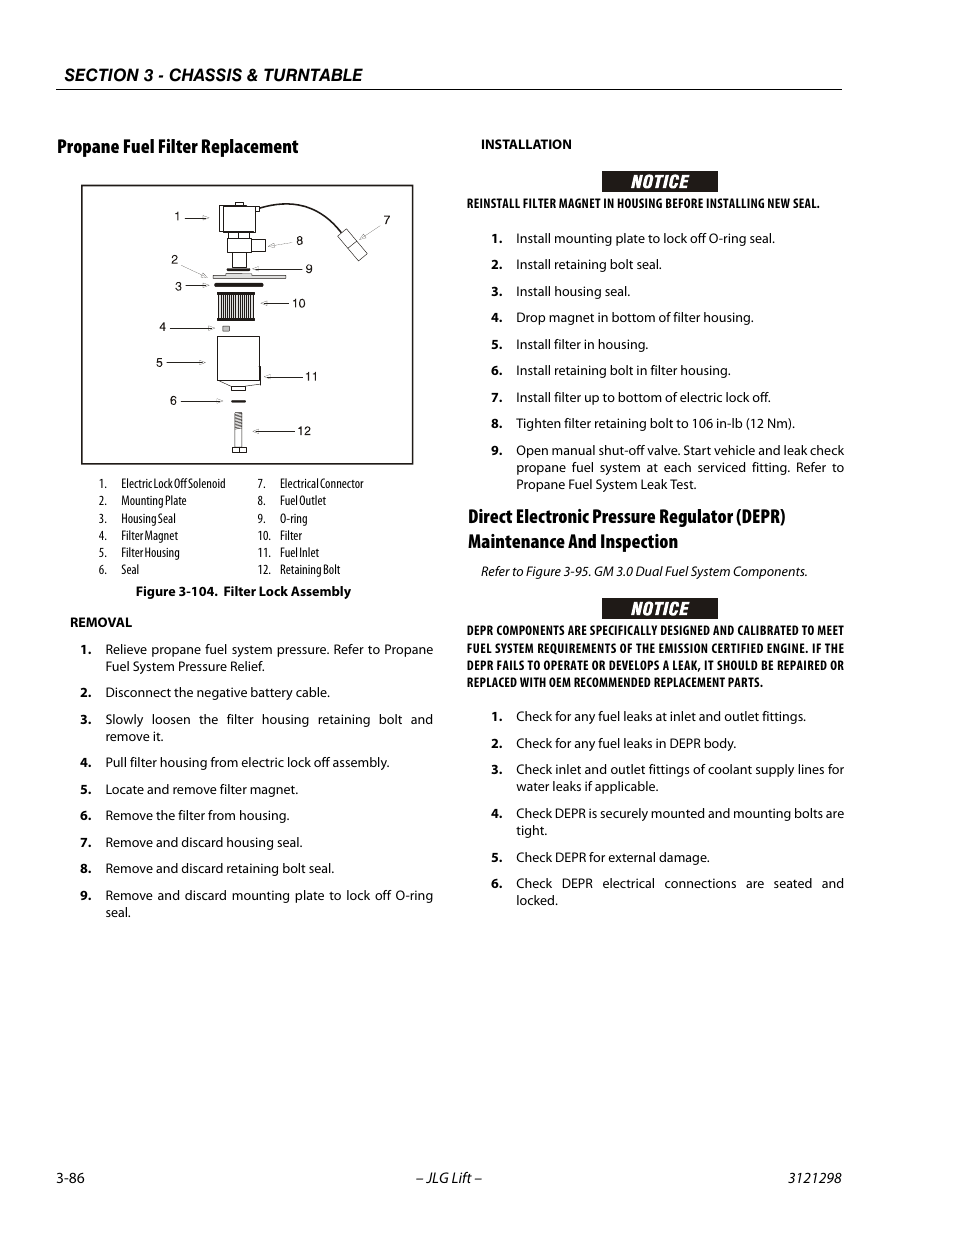 Propane fuel filter replacement, Filter lock assembly -86 | JLG 660SJ  Service Manual User